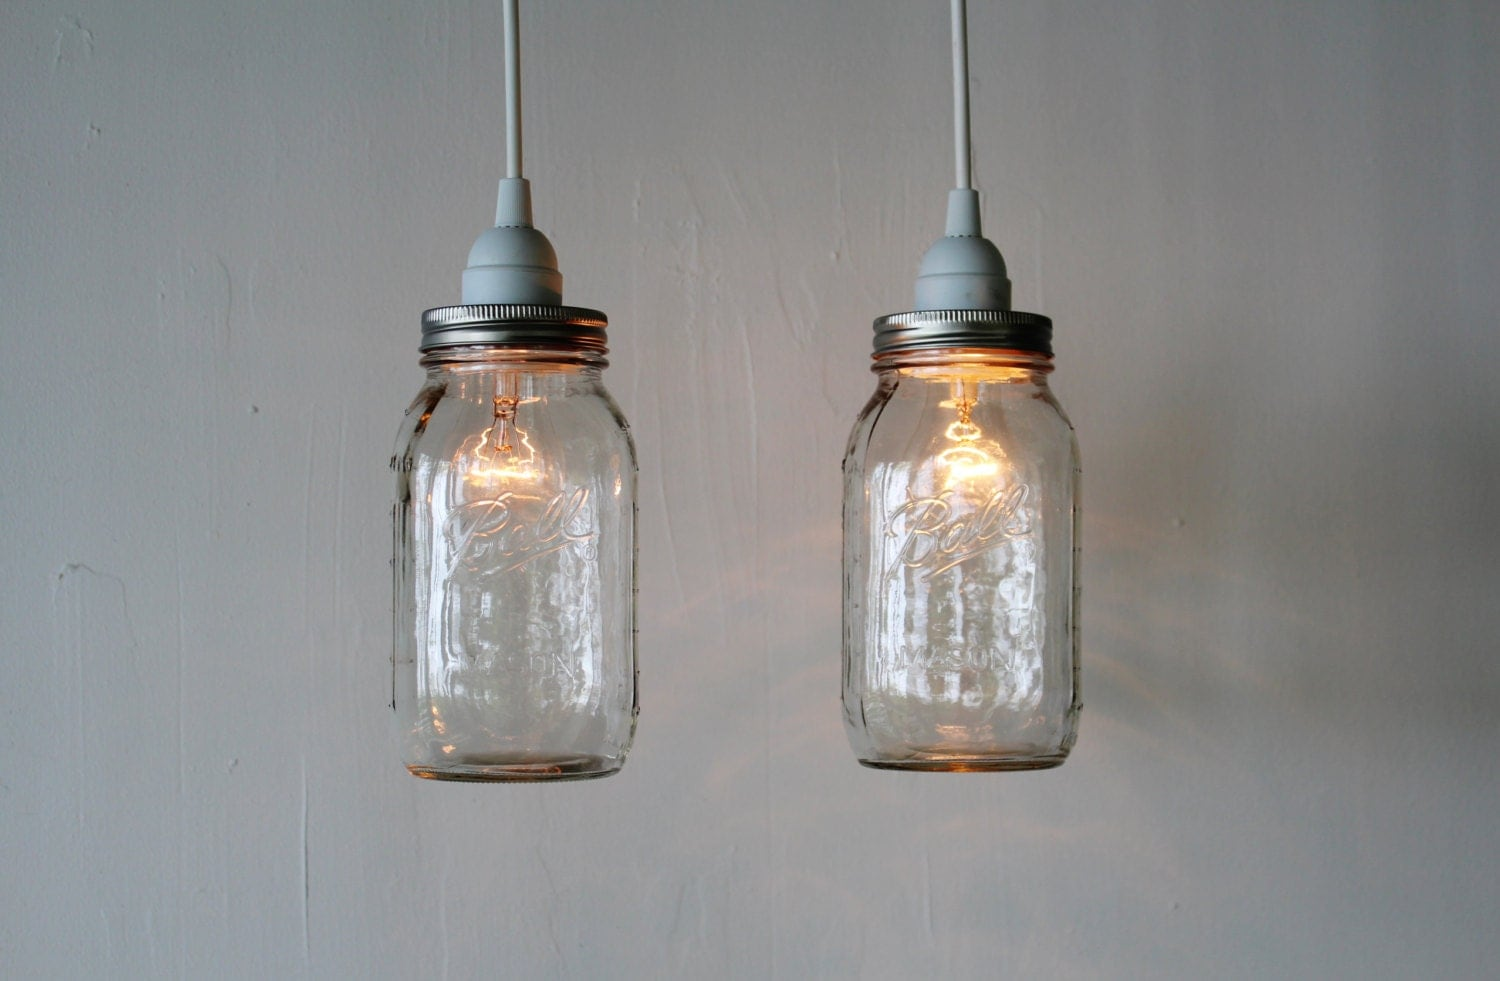 Pair Of Mason Jar Hanging Pendant Lights Upcycled Rustic